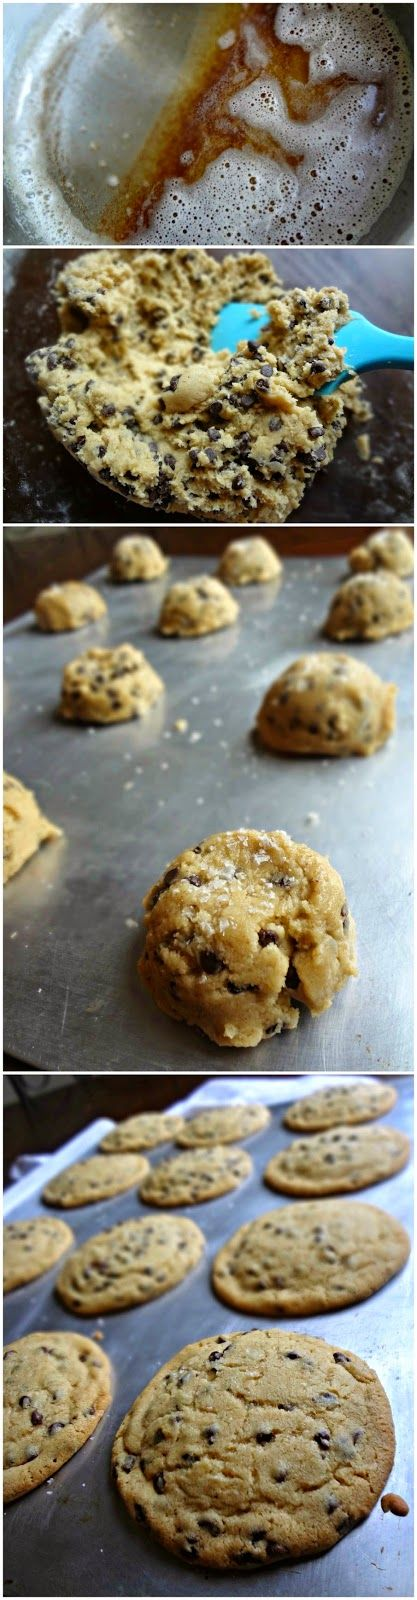 The Cooking Actress: Browned Butter Mini Chip Cookies #cookies #baking #sweets #desserts #snacks #recipe